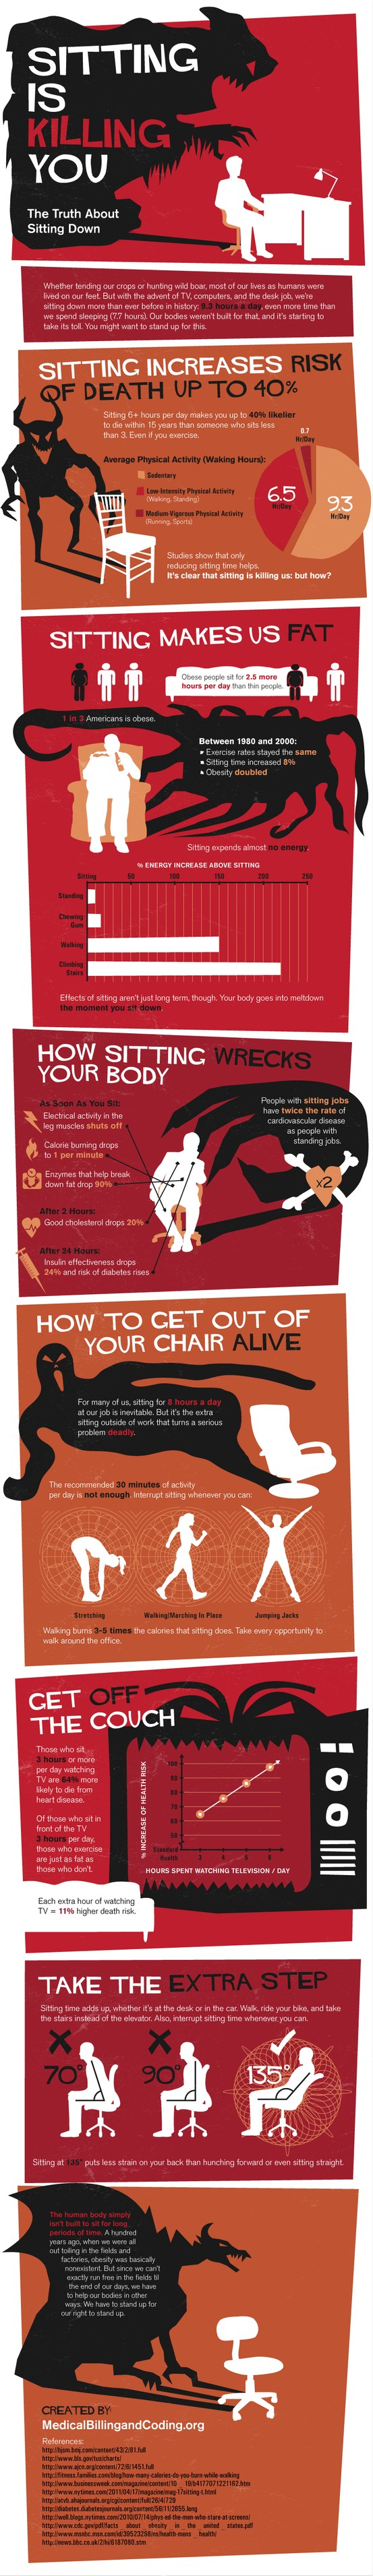 True Facts about Sitting Down